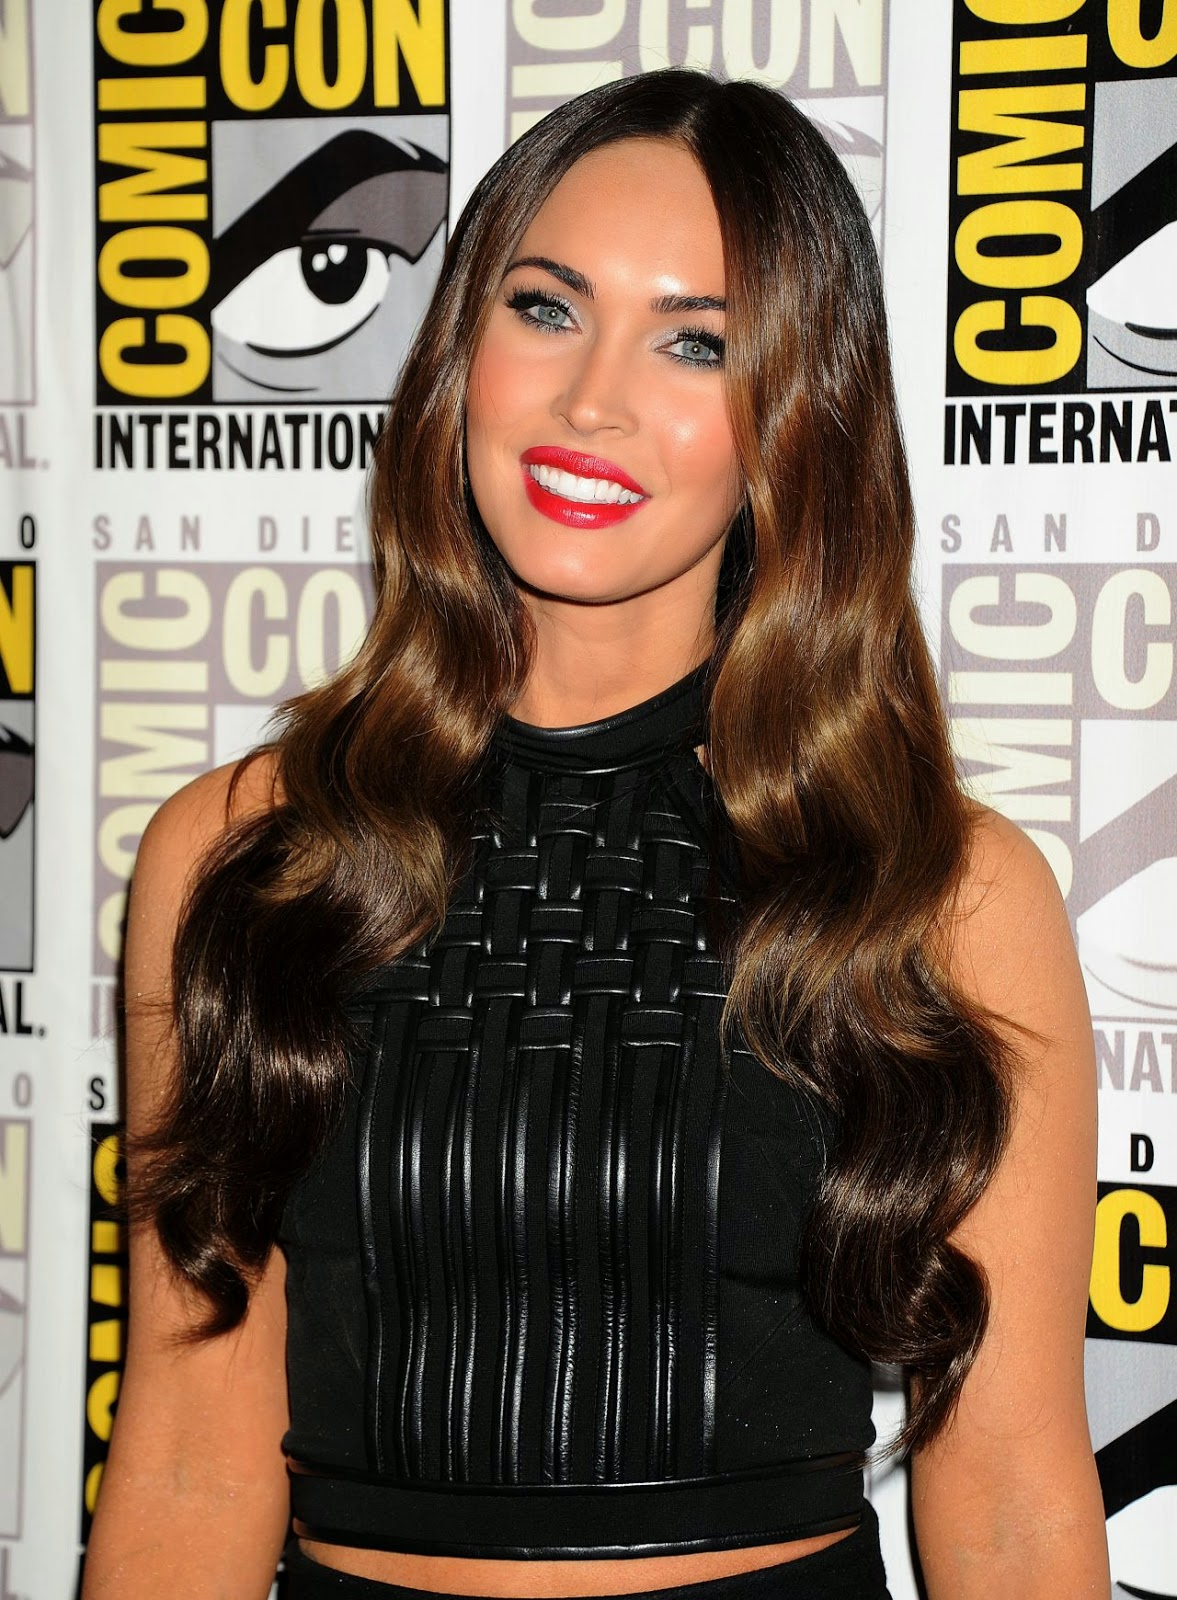 Megan Fox in a sexy leather dress at the 'Teenage Mutant Ninja Turtles' Press Line at Comic-Con 2014